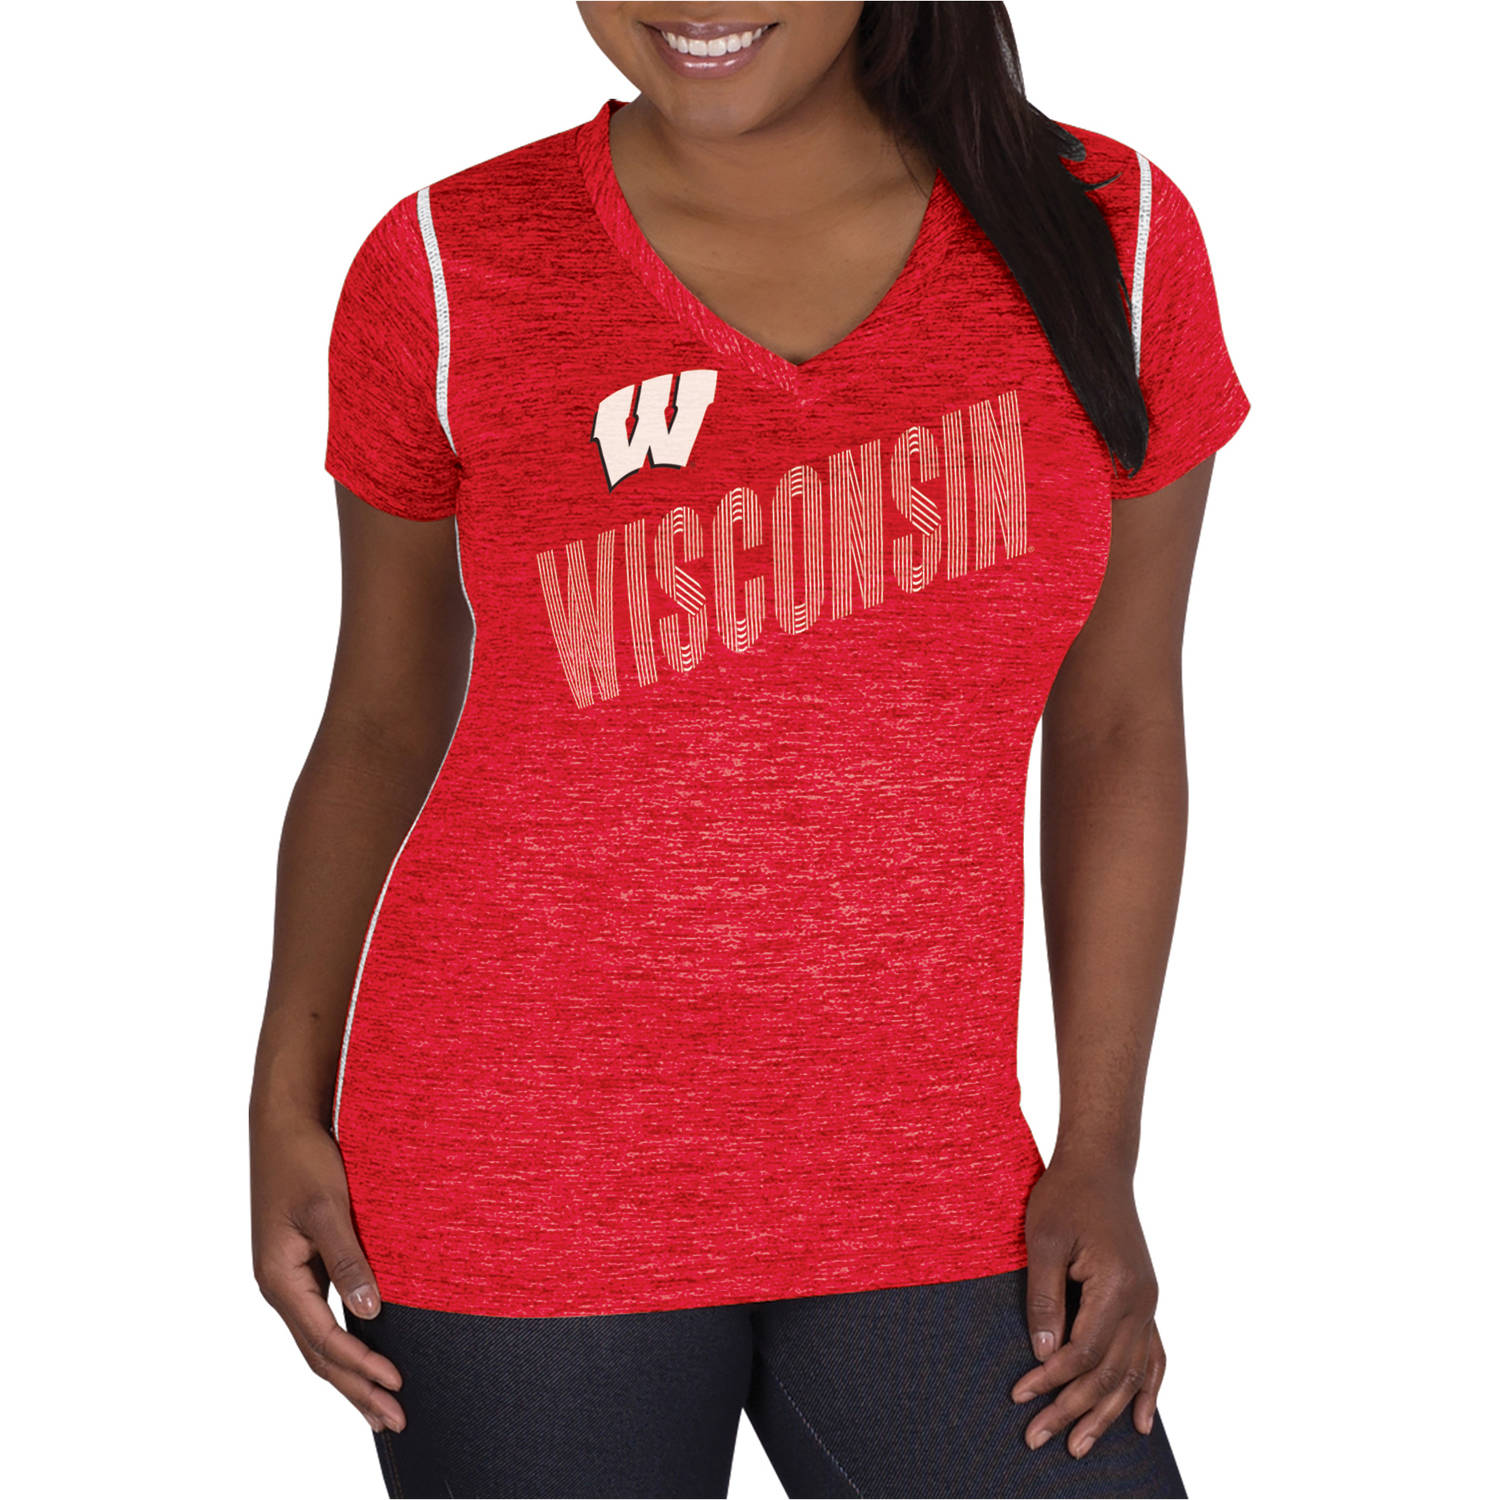 NCAA Wisconsin Badgers Ladies Classic-Fit Synthetic V-Neck Tee